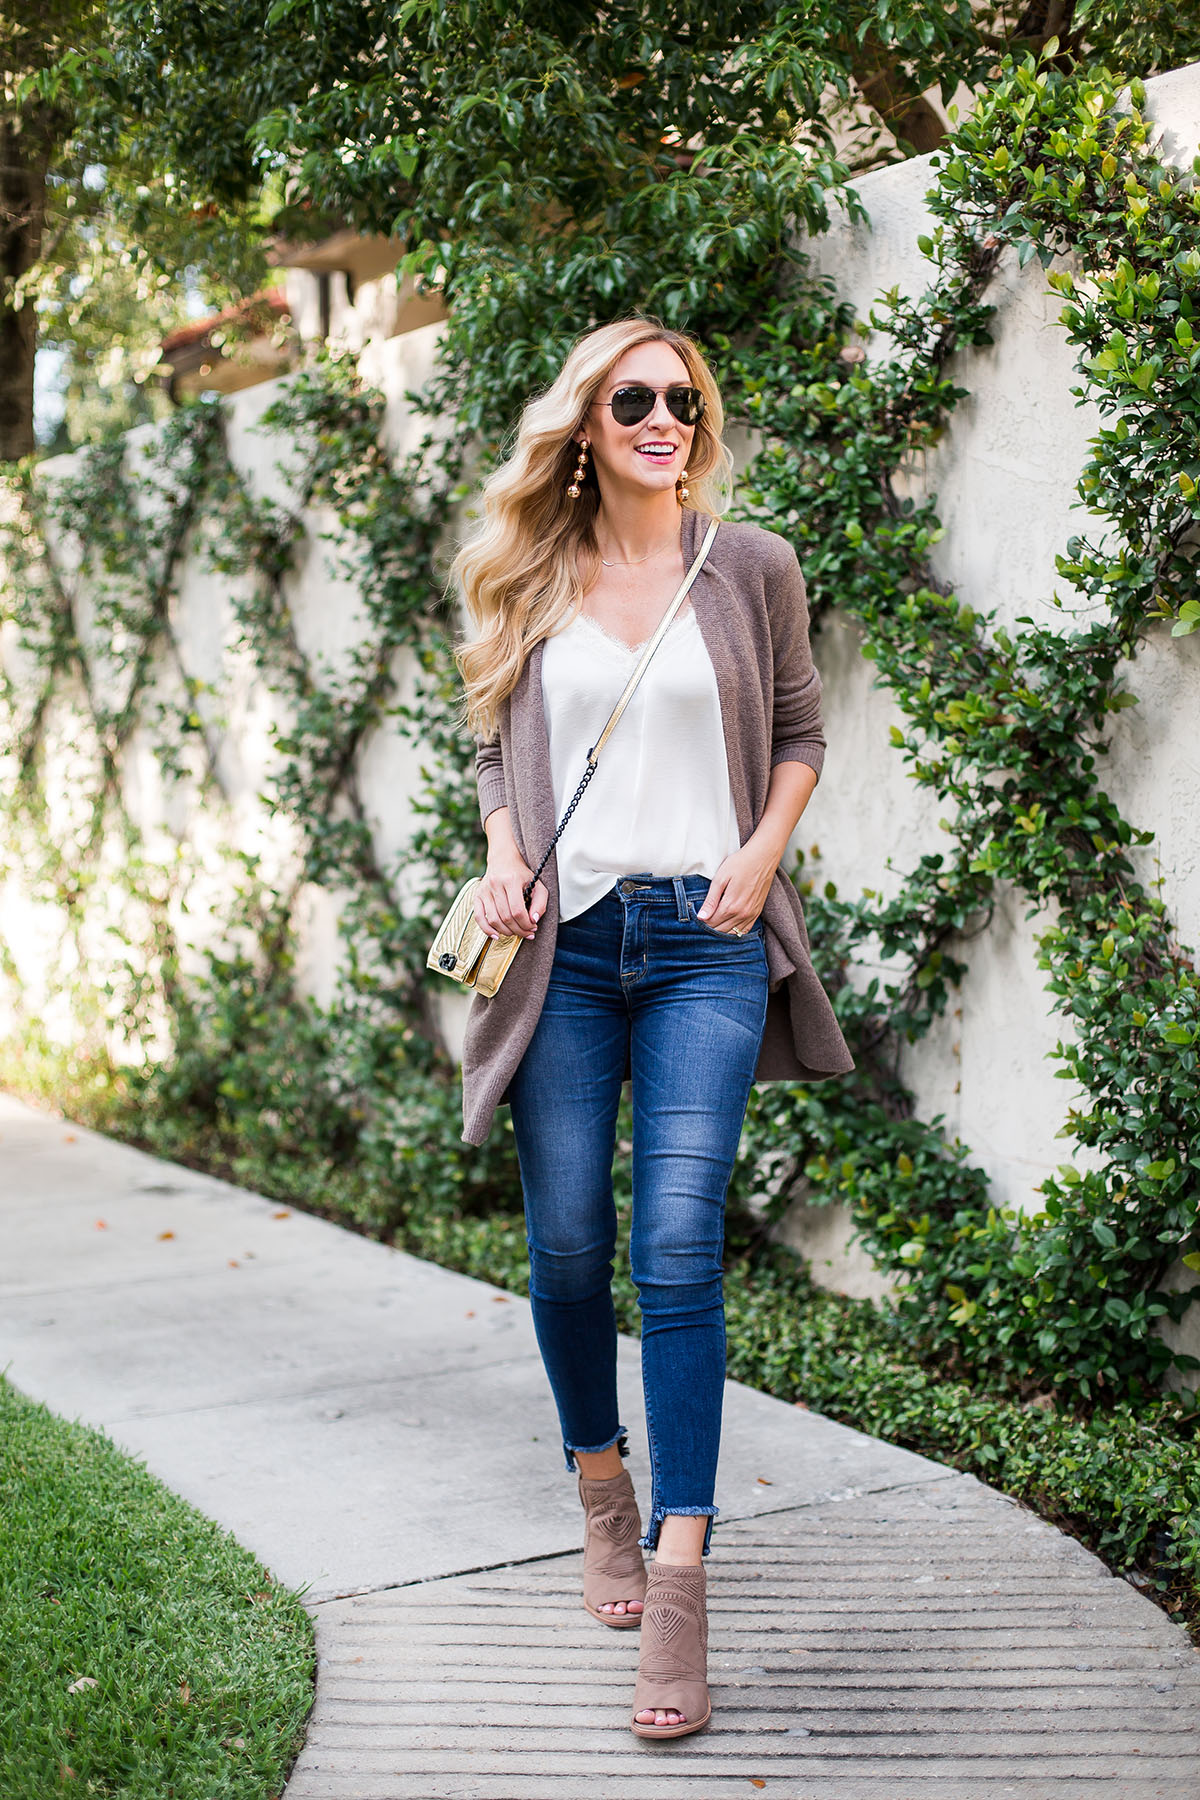 Fall outfits basics to stock up on in the Nordstrom Anniversary Sale | Fall outfit ideas